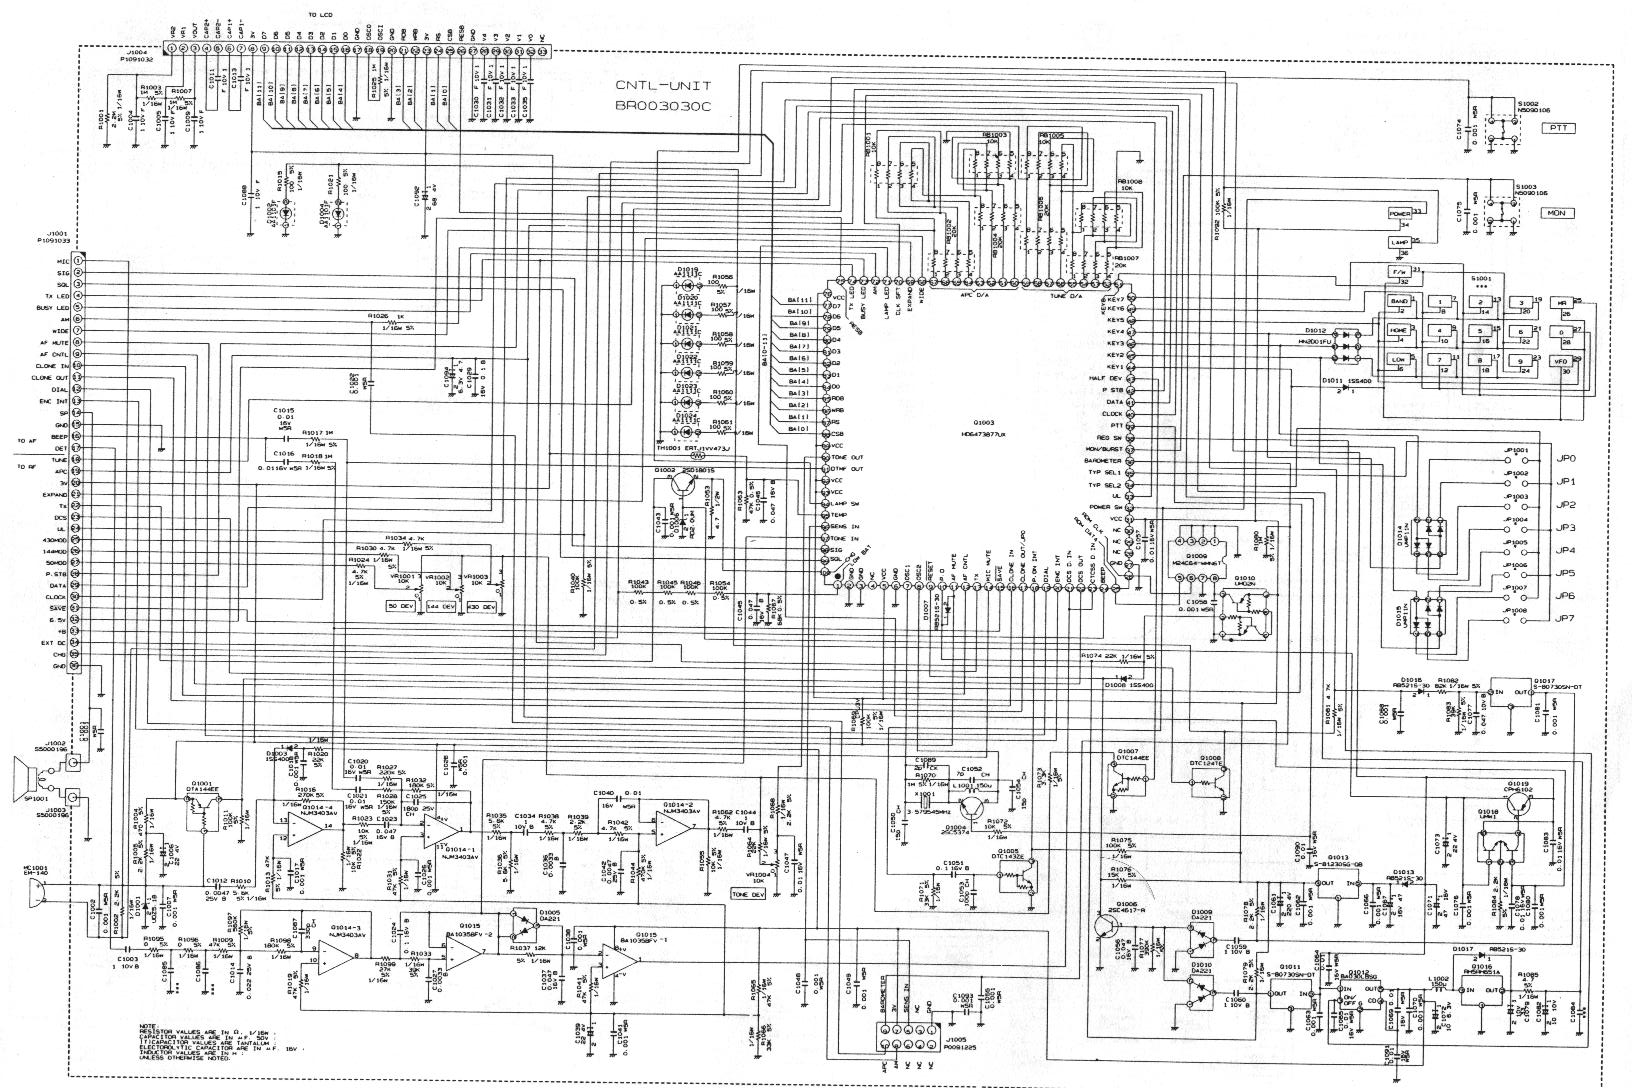 YAESU VX 5 Schematic b index of pub radio_manuals yaesu Yaesu G-450A at gsmx.co